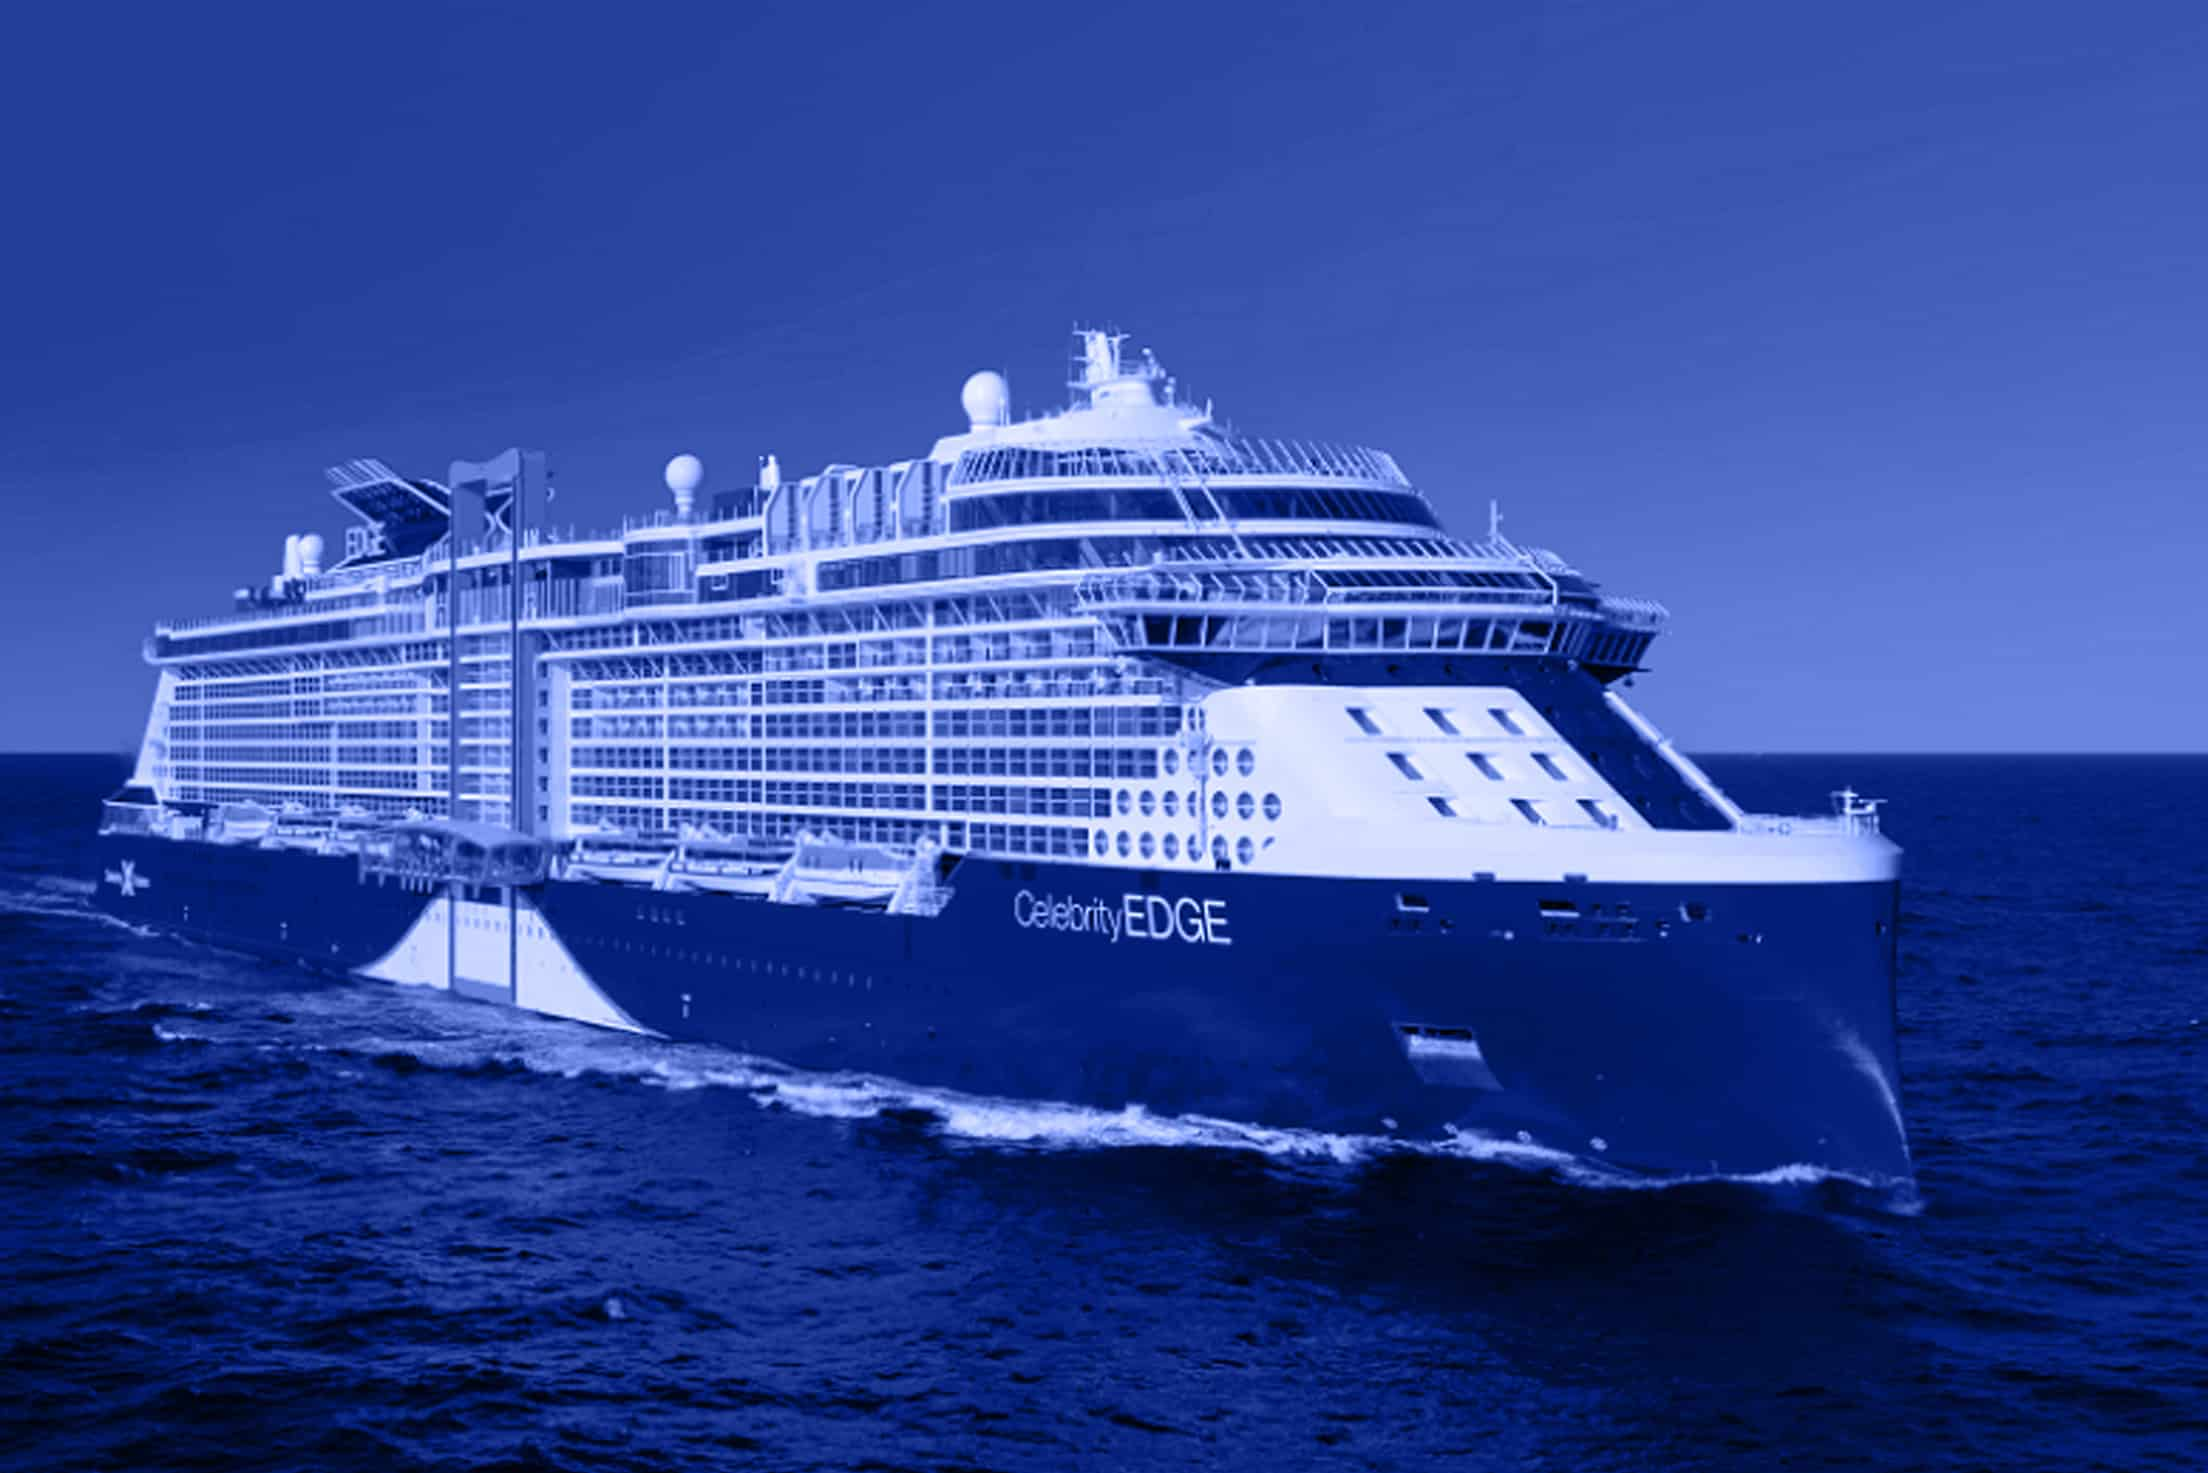 DJ STUCK ON A CRUISE SHIP FOR THREE MONTHS DUE TO COVID19 RESTRICTIONS